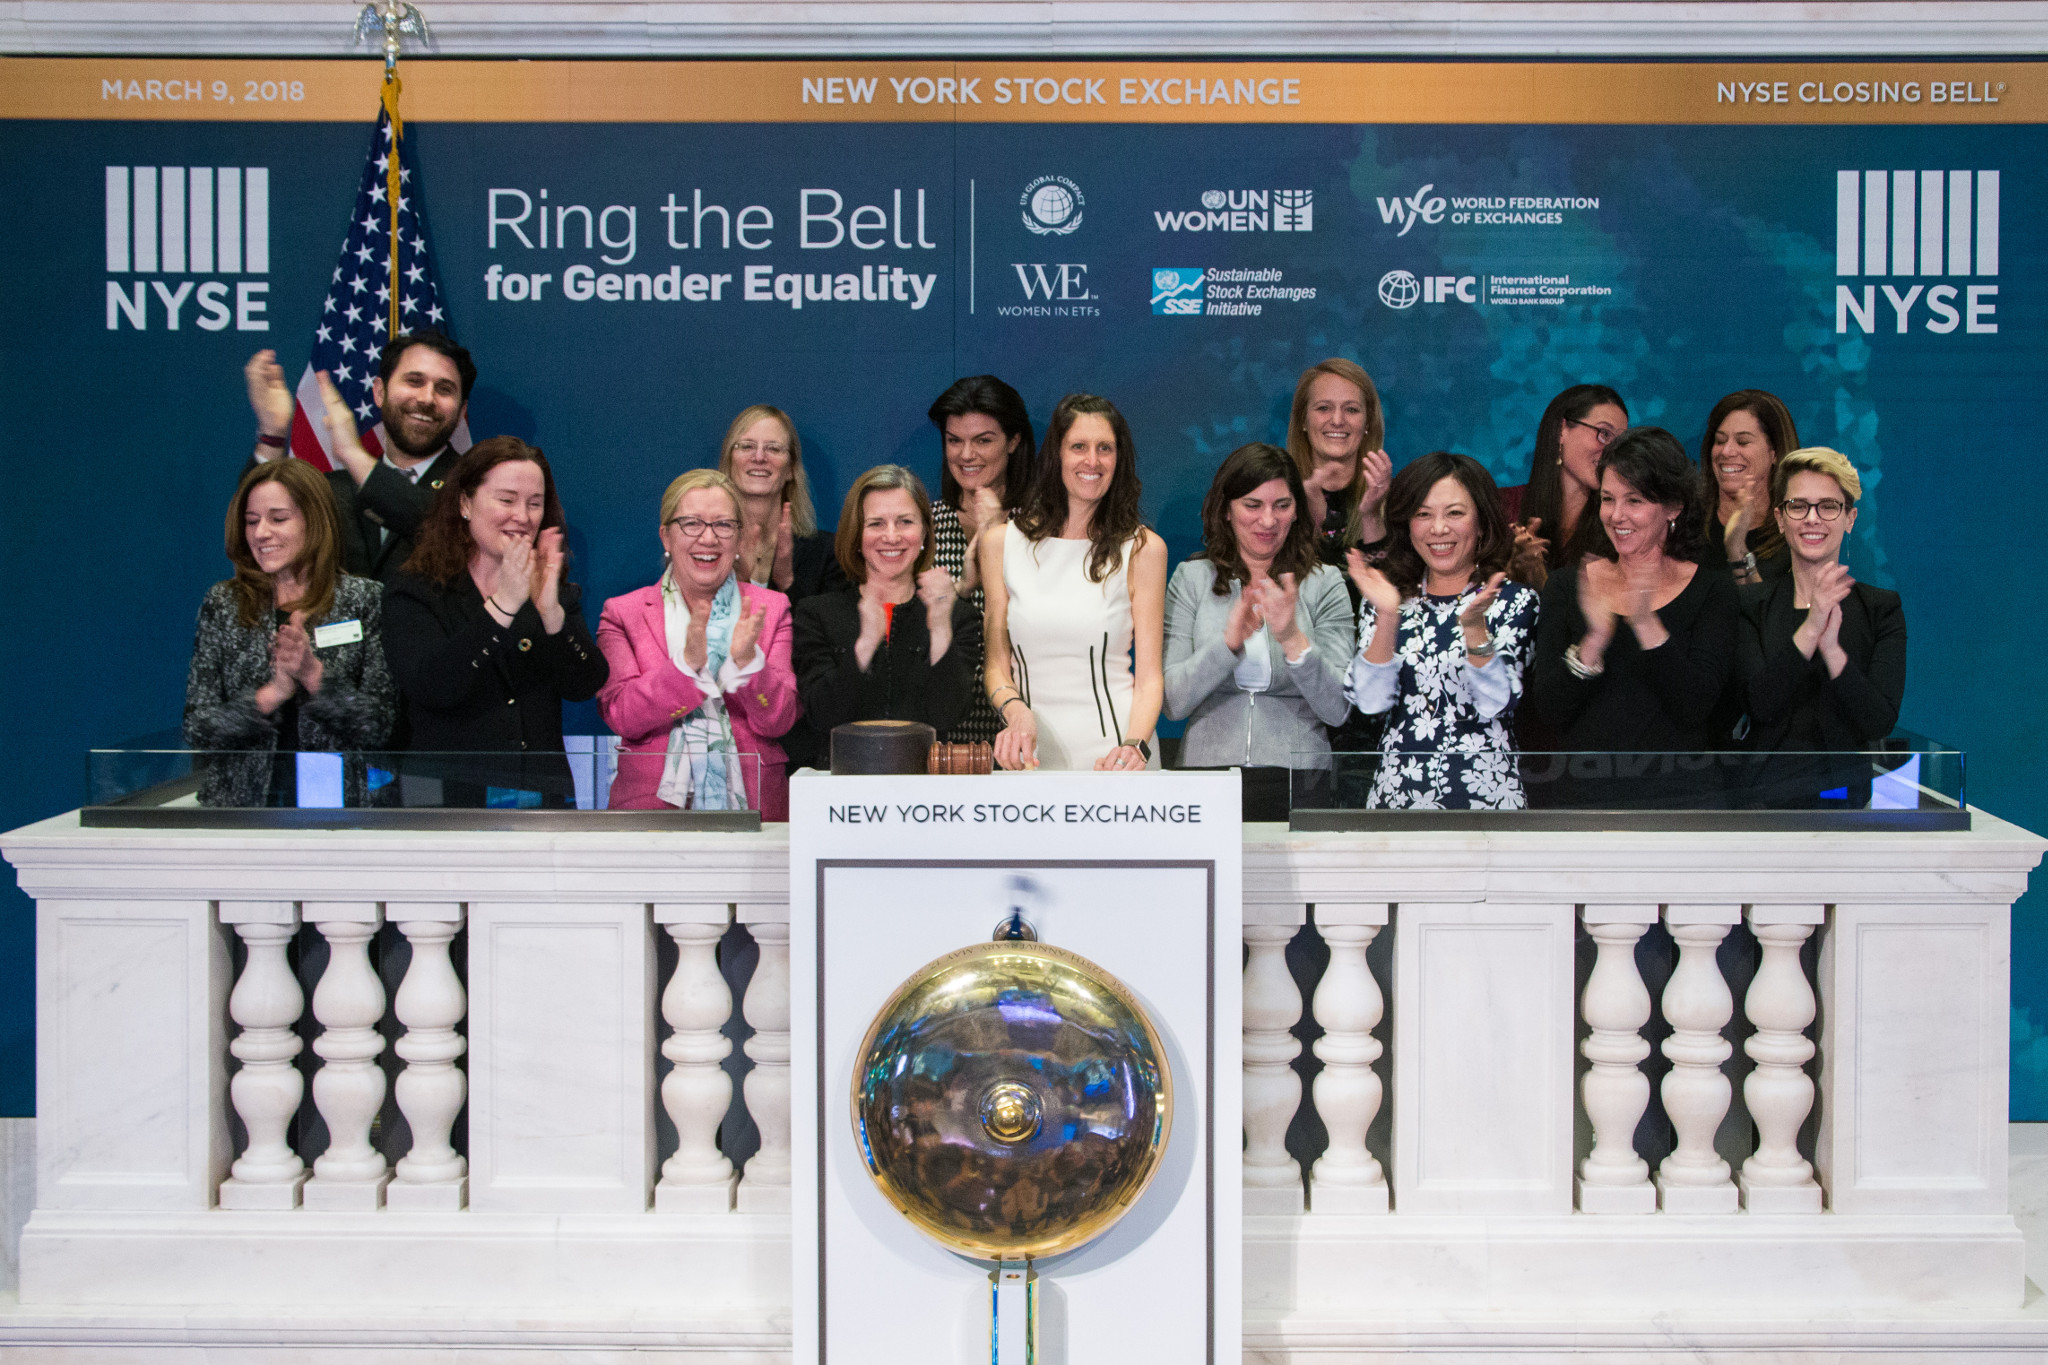 NYSE Bell